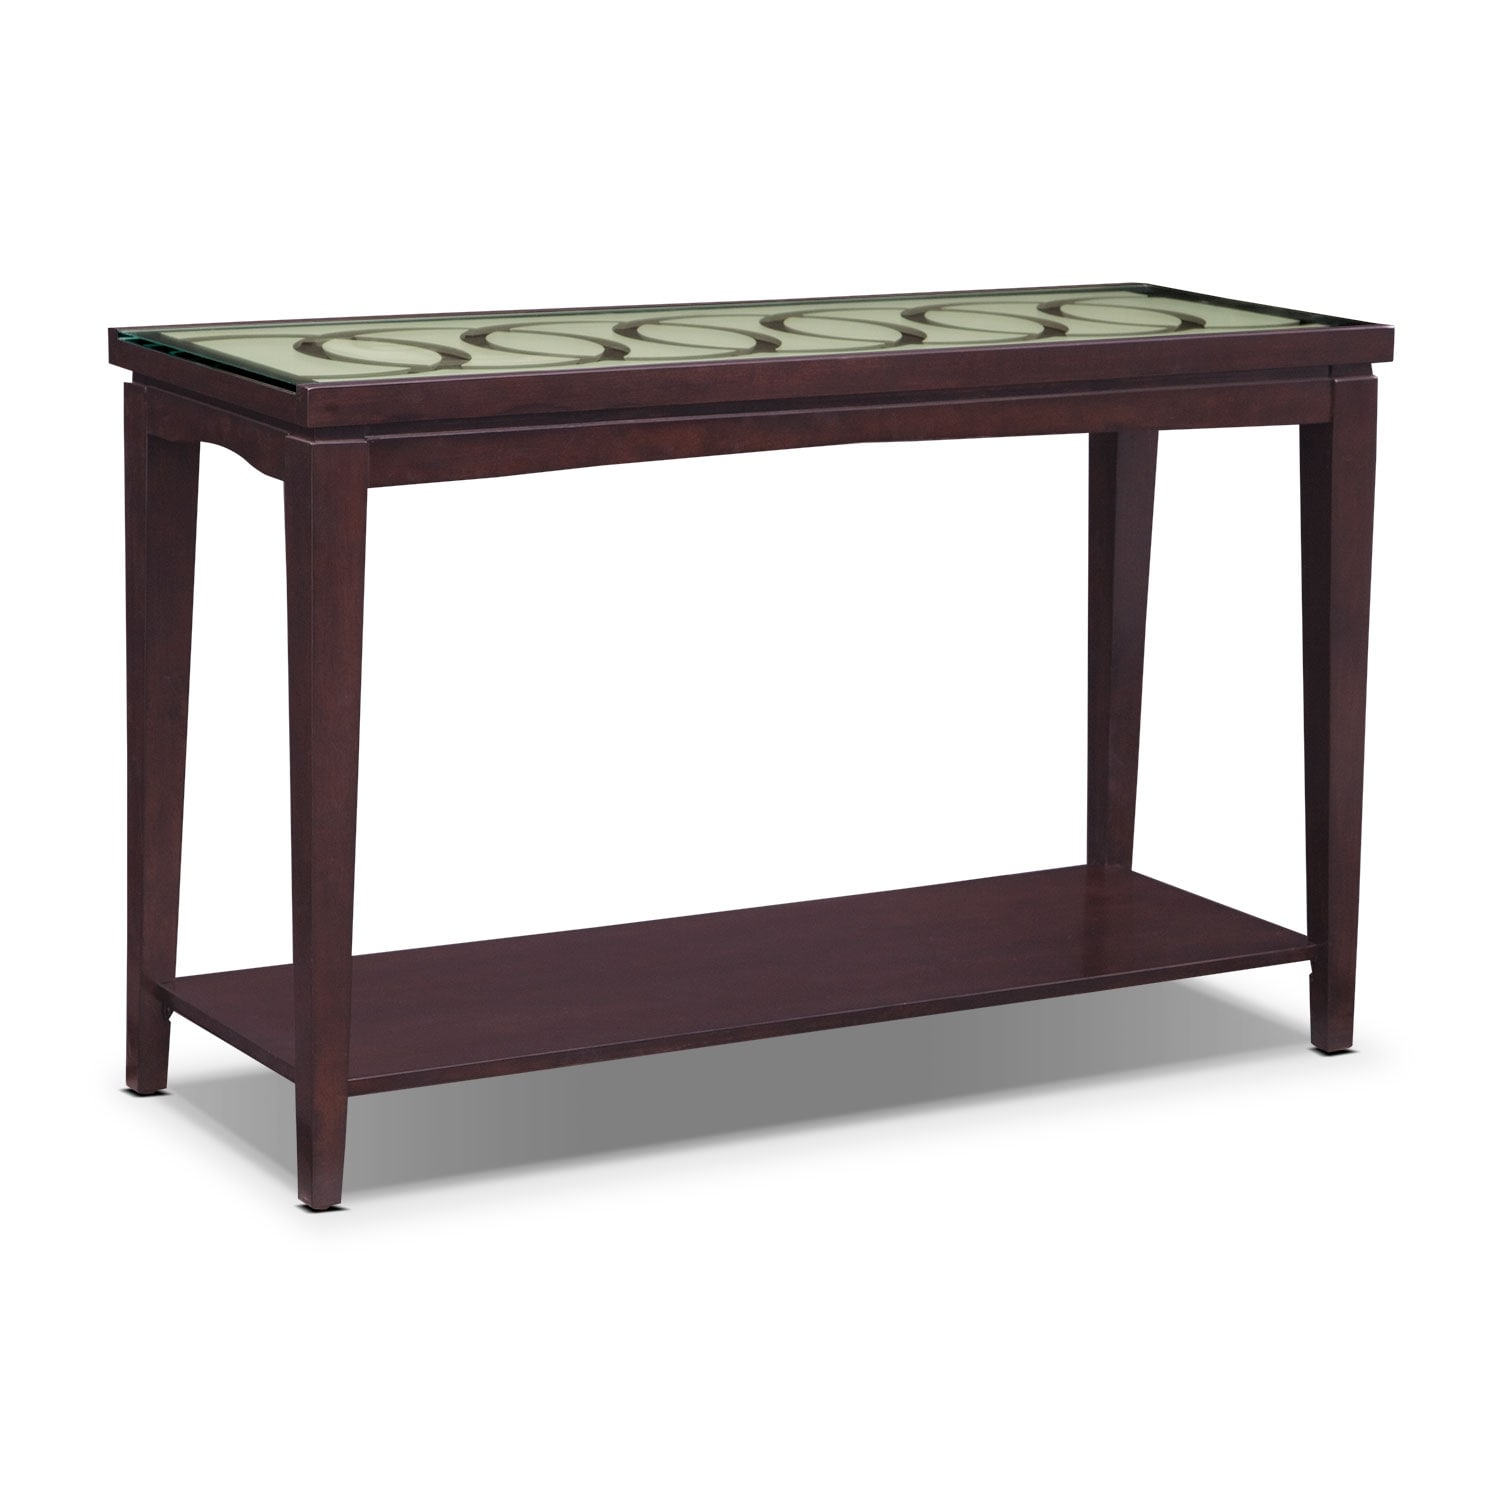 Accent and Occasional Furniture - Cosmo Sofa Table - Merlot